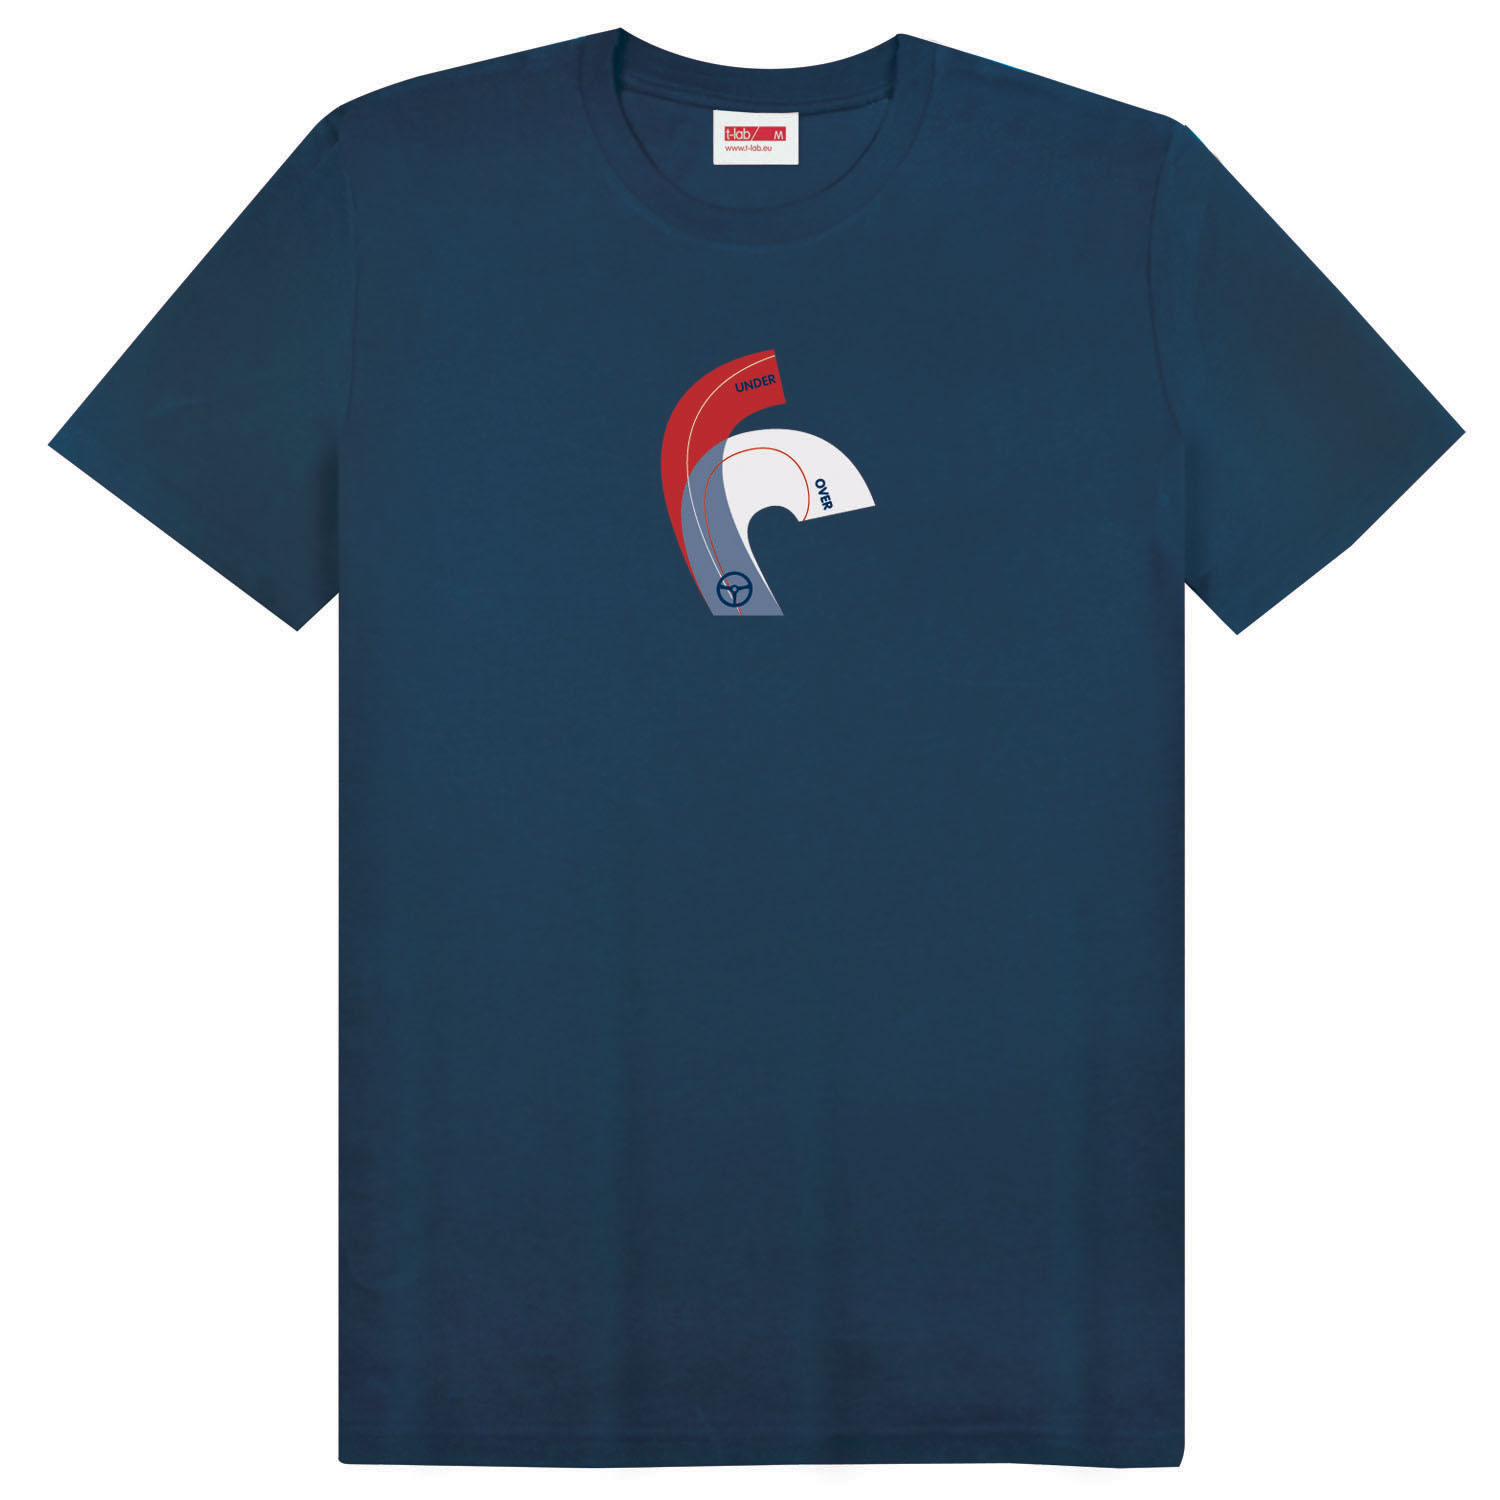 T-lab-Over-Out-mens-organic-t-shirt-navy